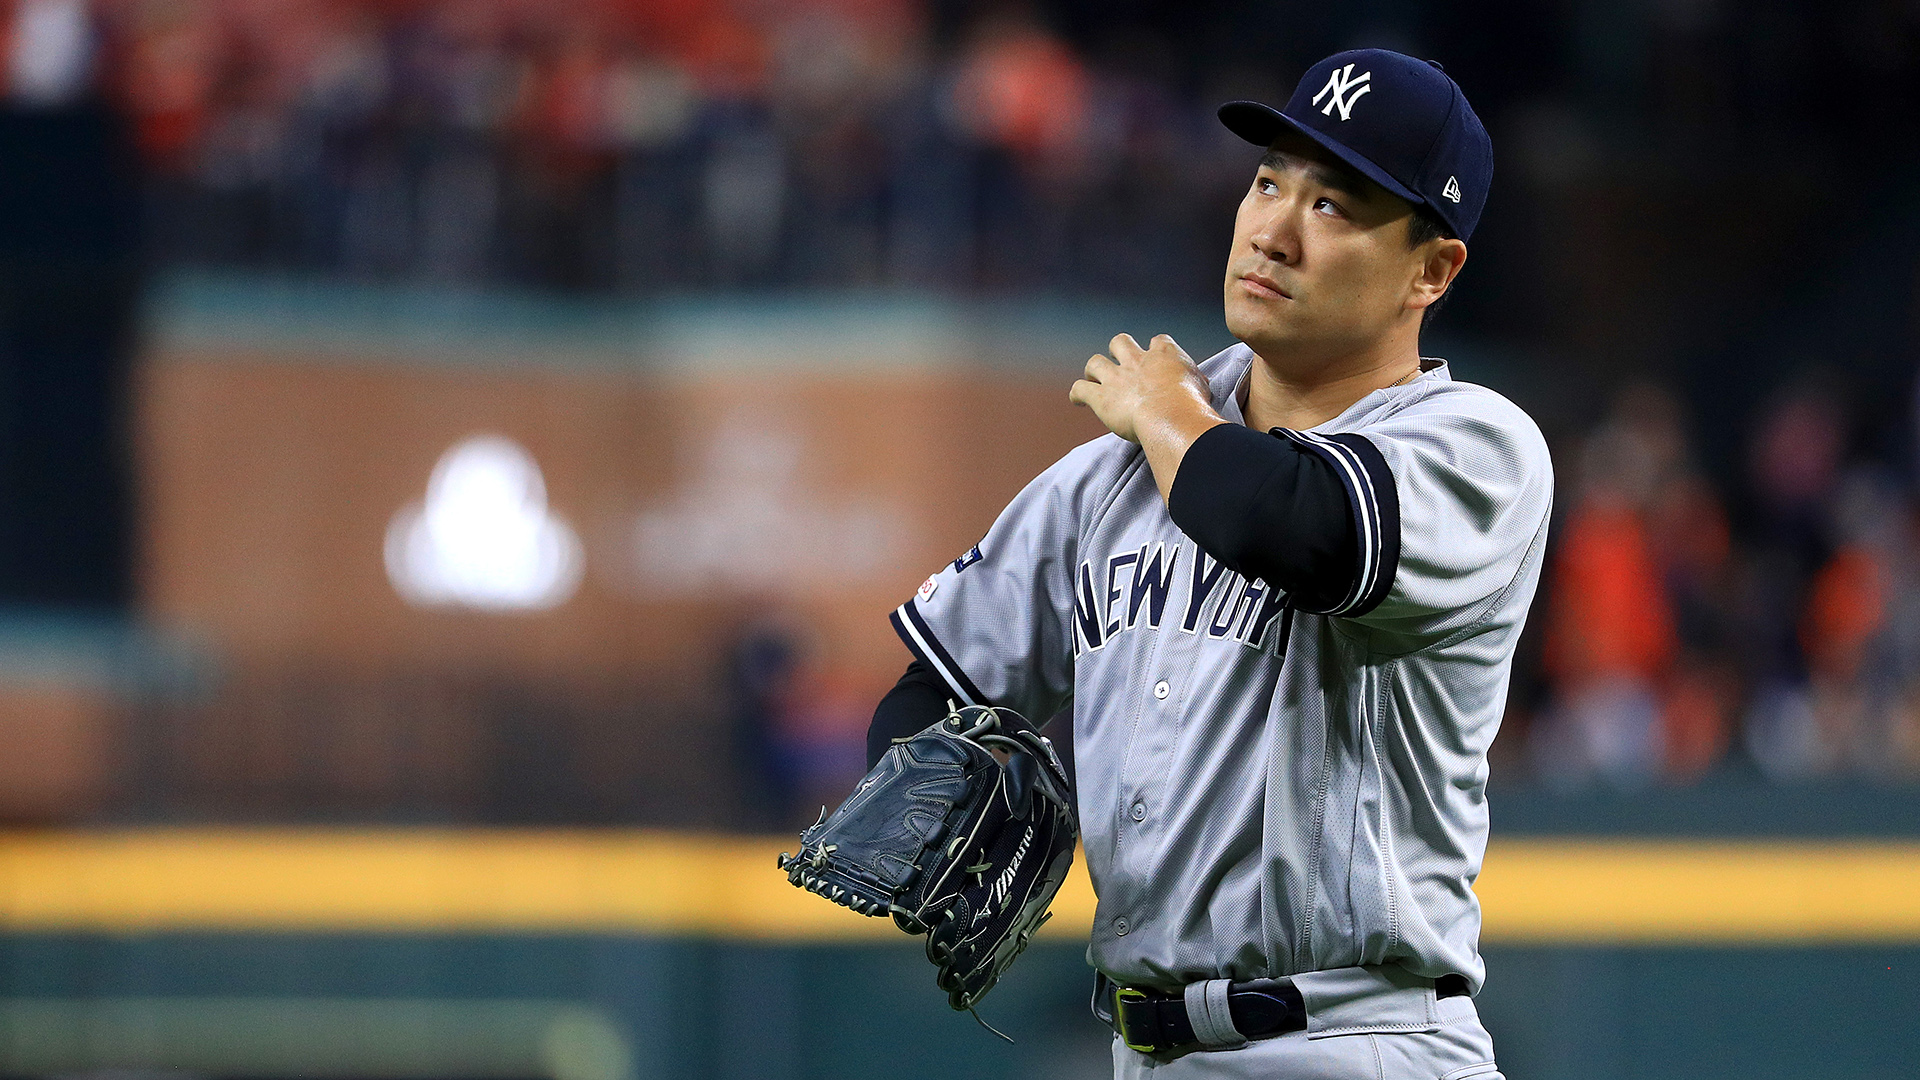 New York needs its starters, beginning with Tanaka in Game 4, to pitch deep into games as it potentially faces four games in four days.